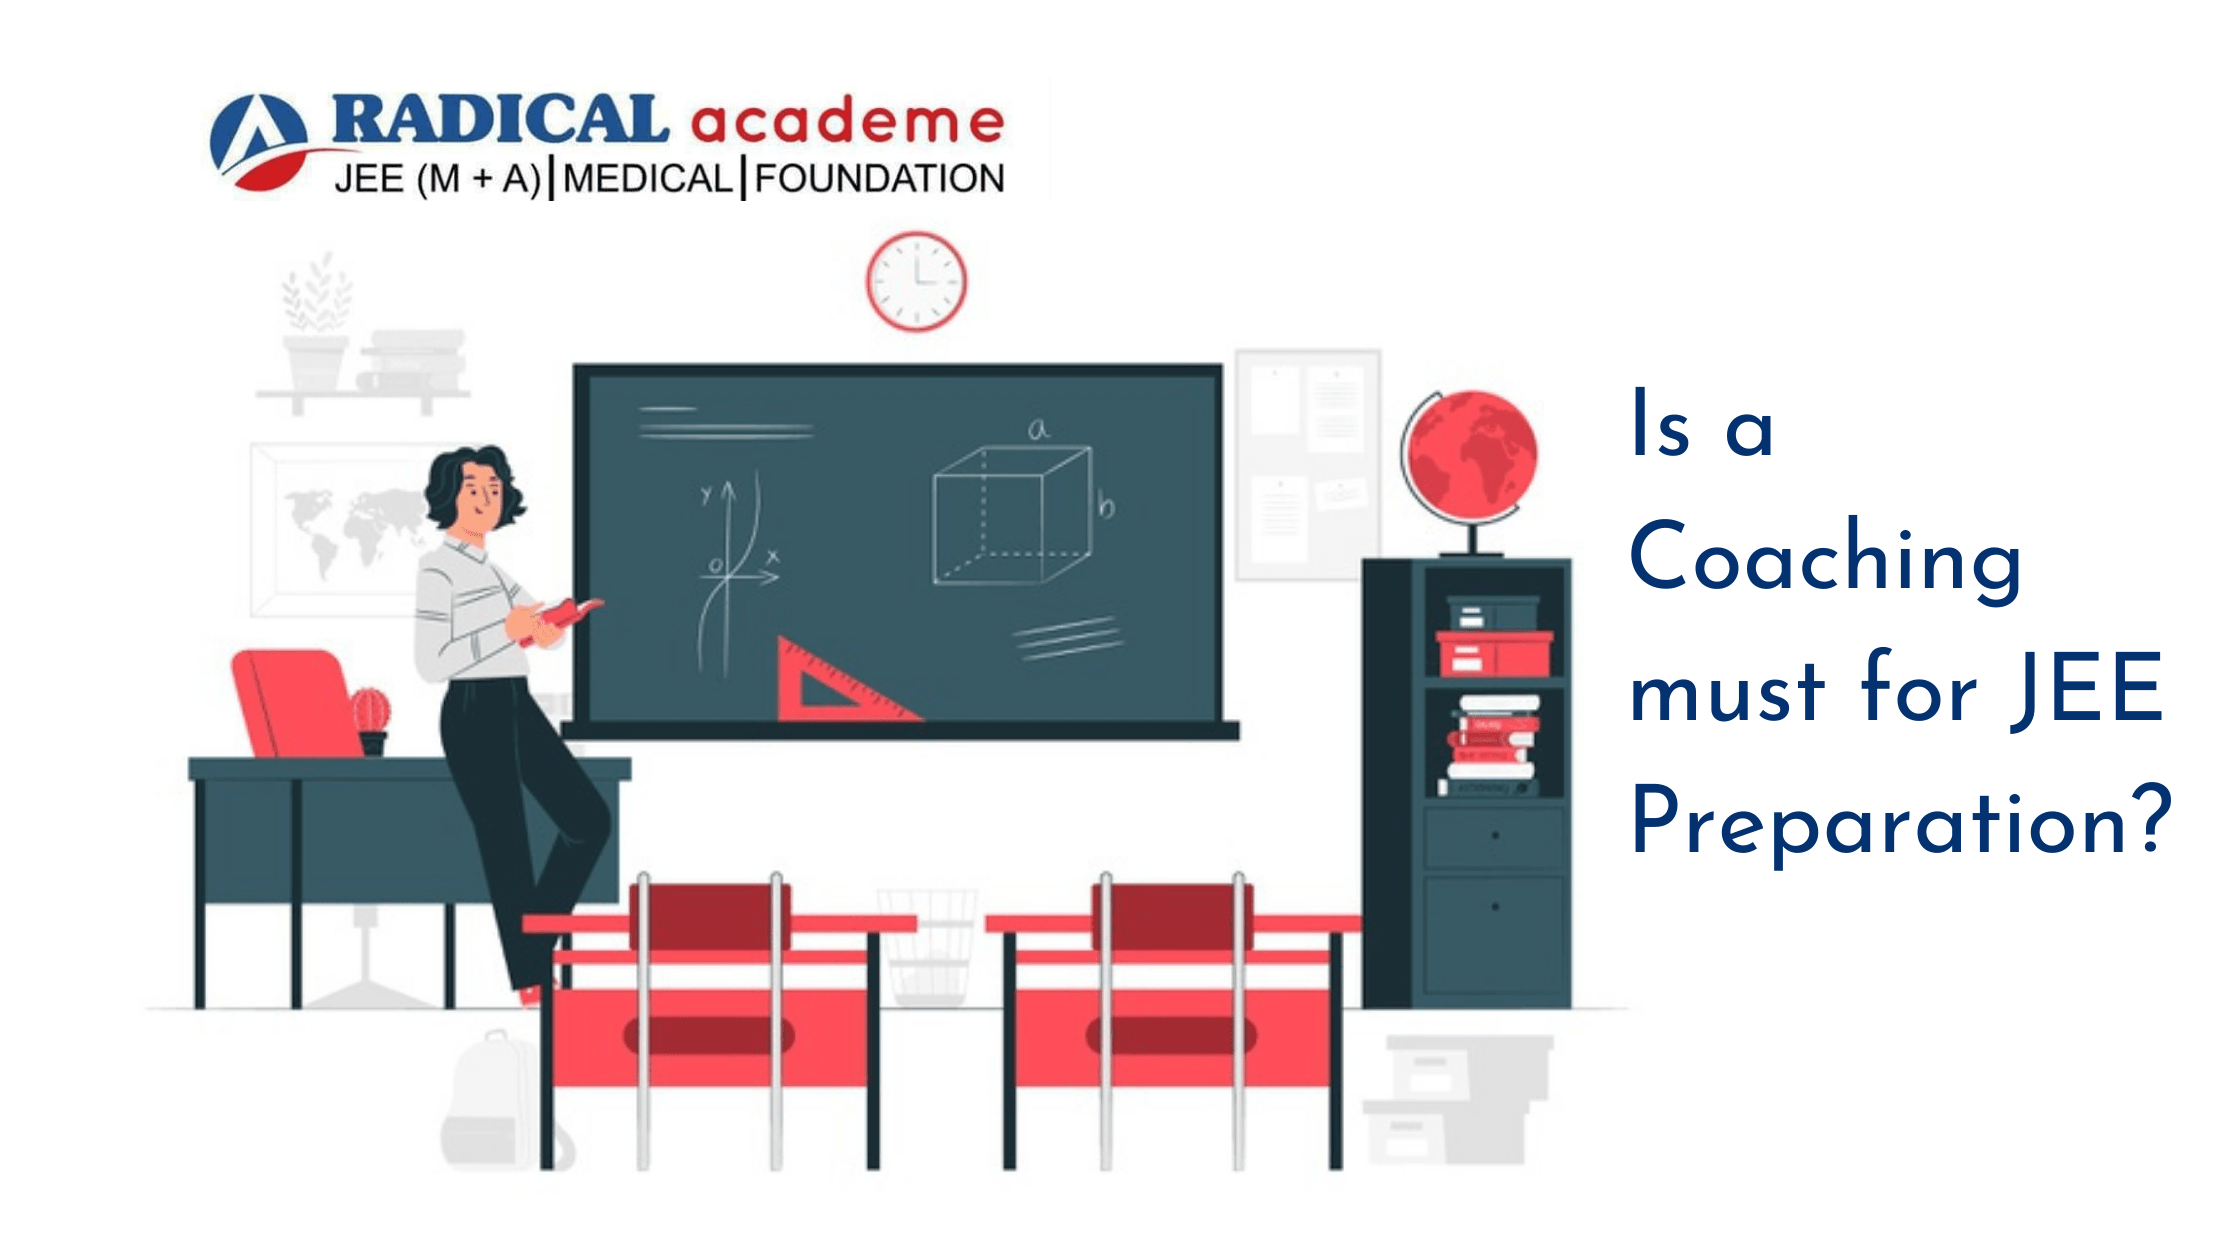 is-a-Coaching-a-must-for-JEE-Preparation